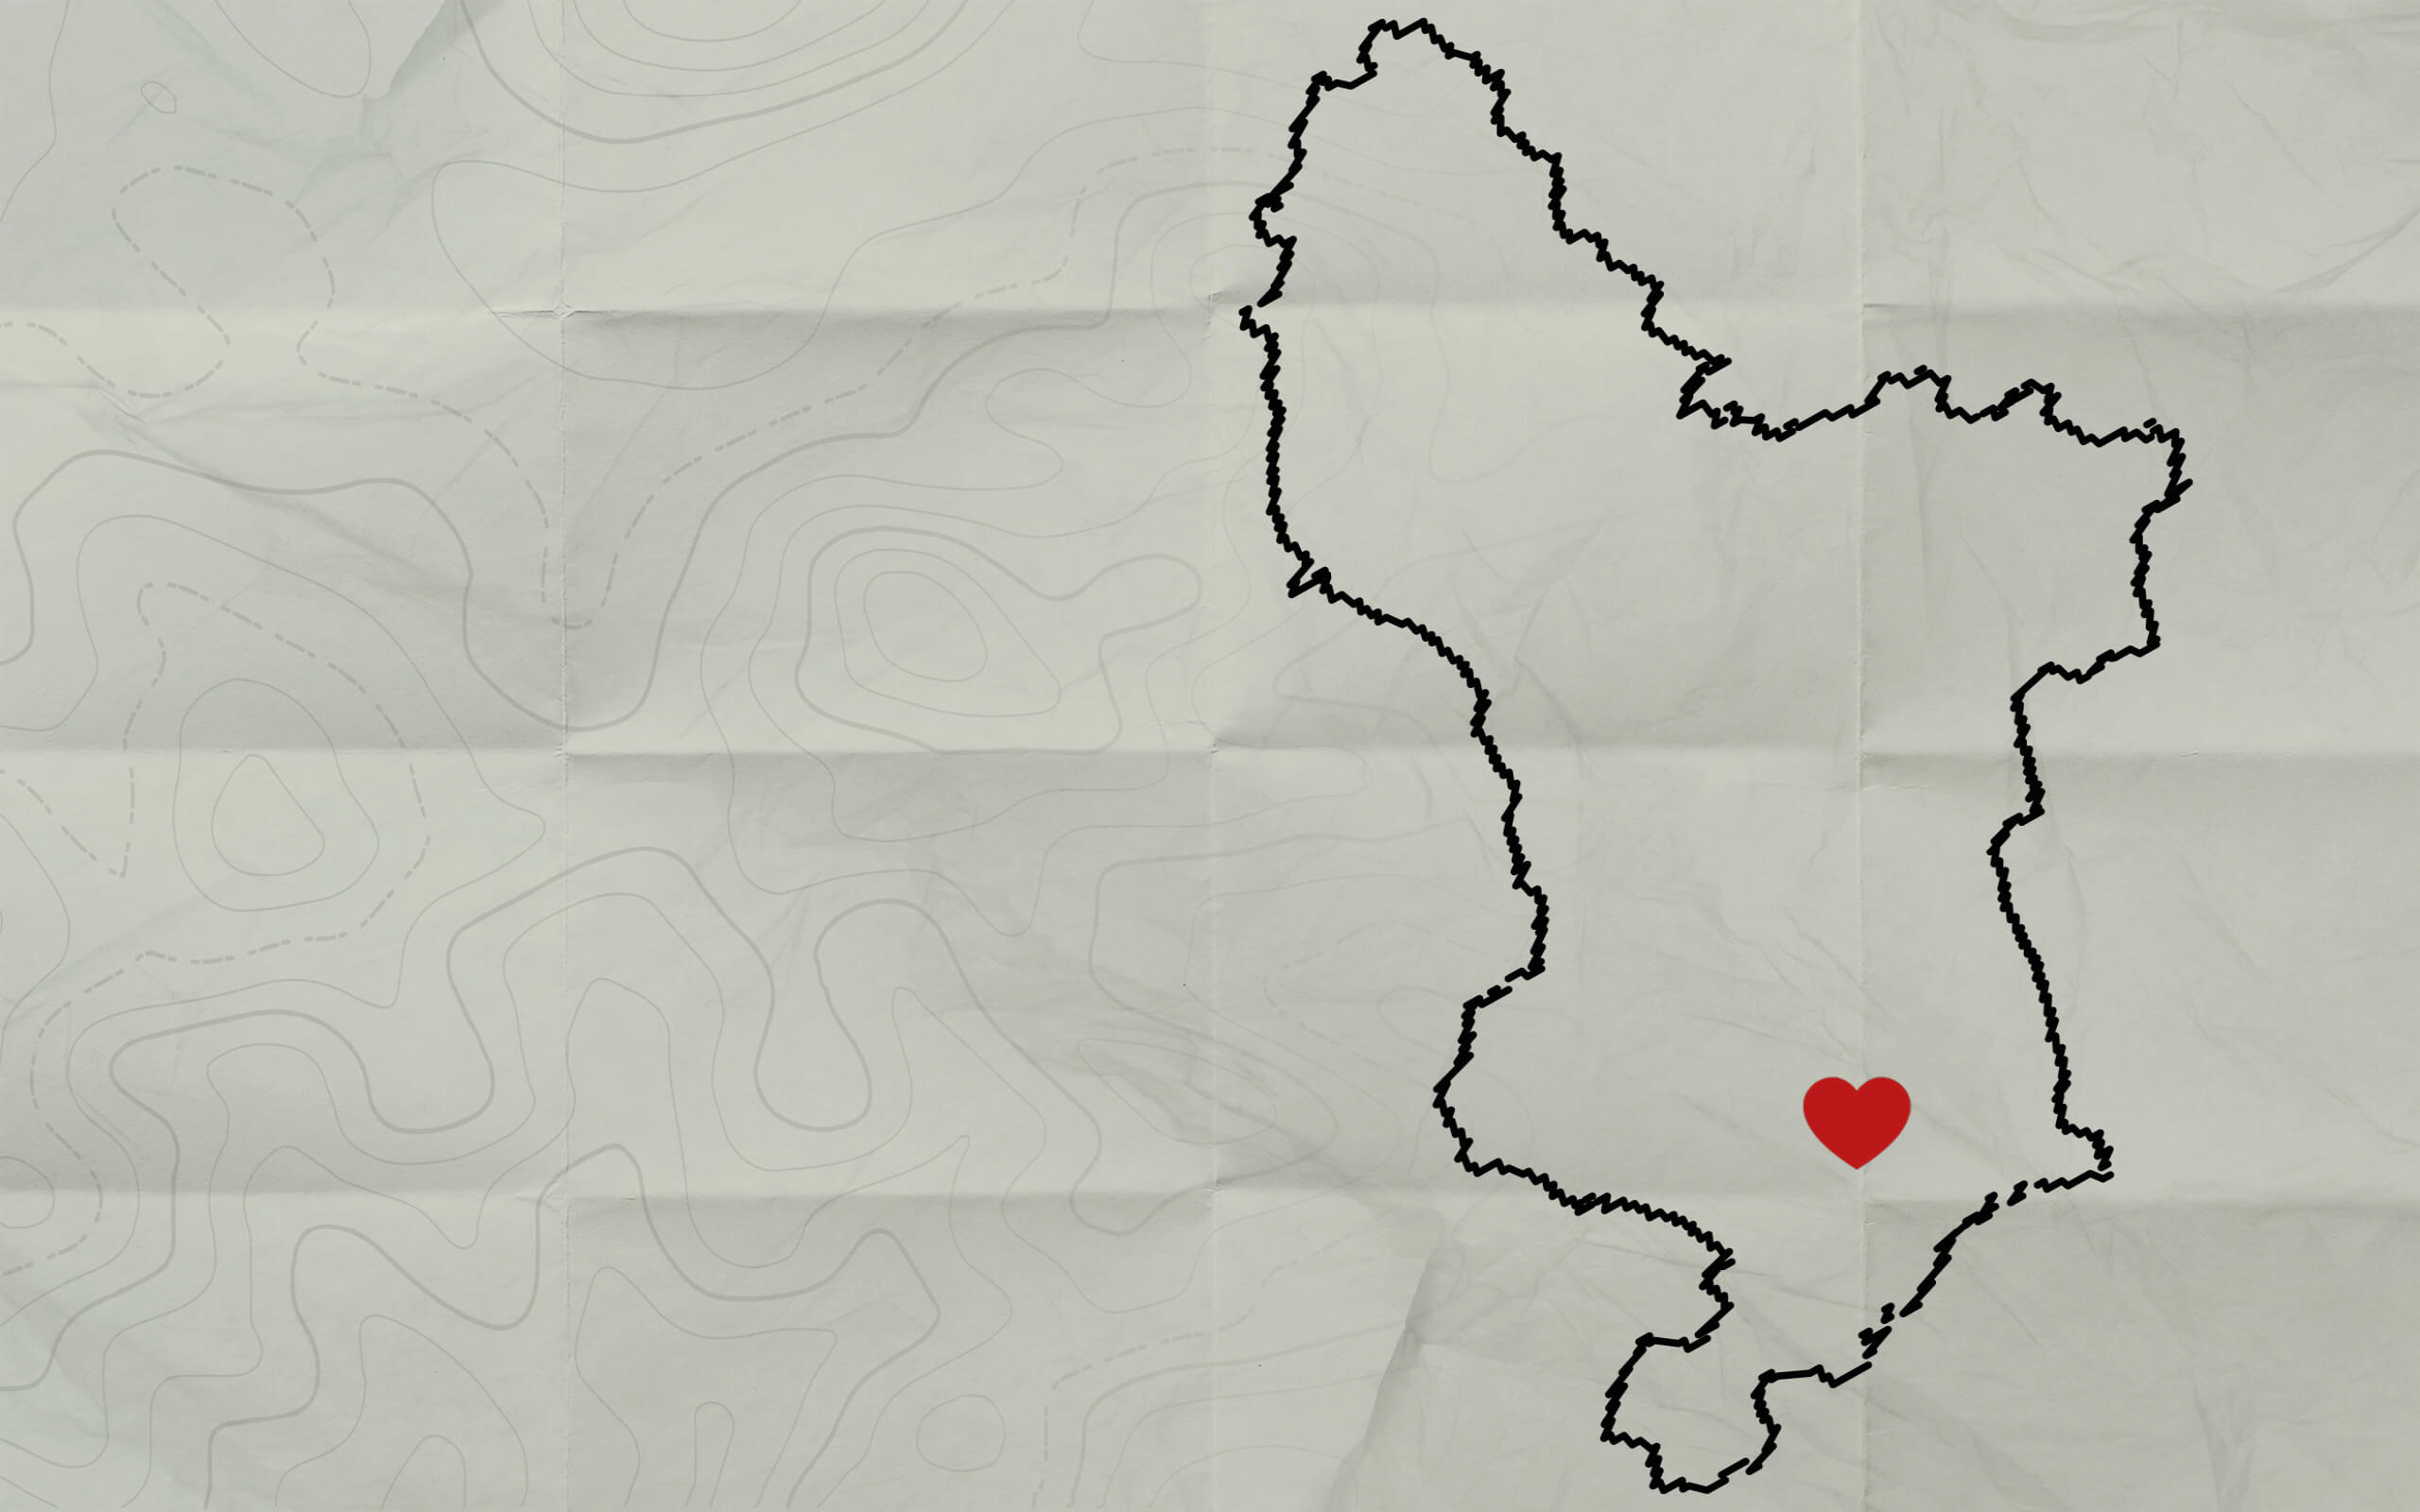 An outline of Derbyshire with a heart on it.